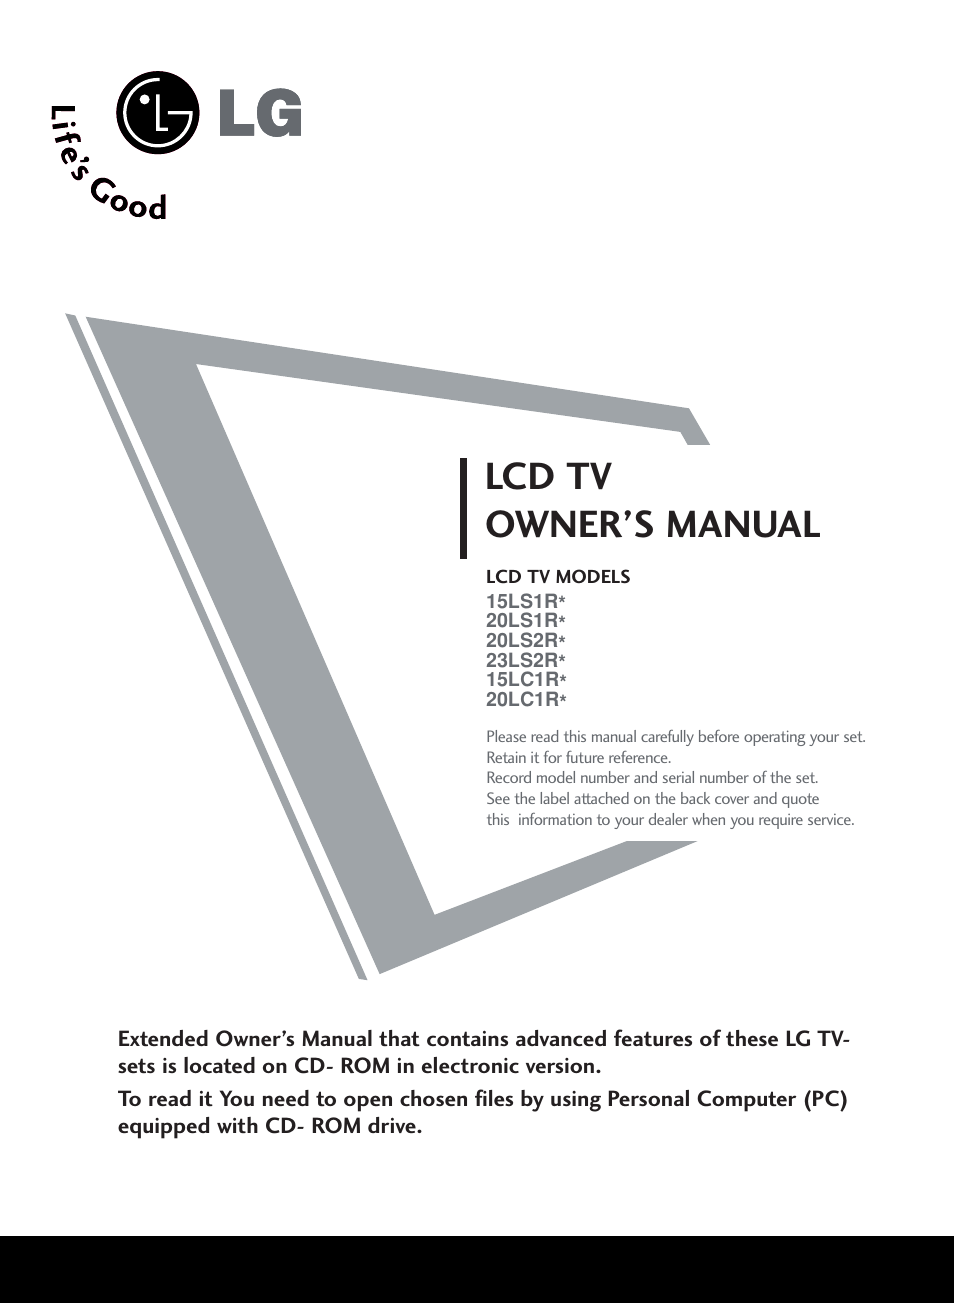 lcd tv owner s manual lg 20ls1r user manual page 13 236 rh manualsdir com lg lcd tv service manual free download lg lcd service manual